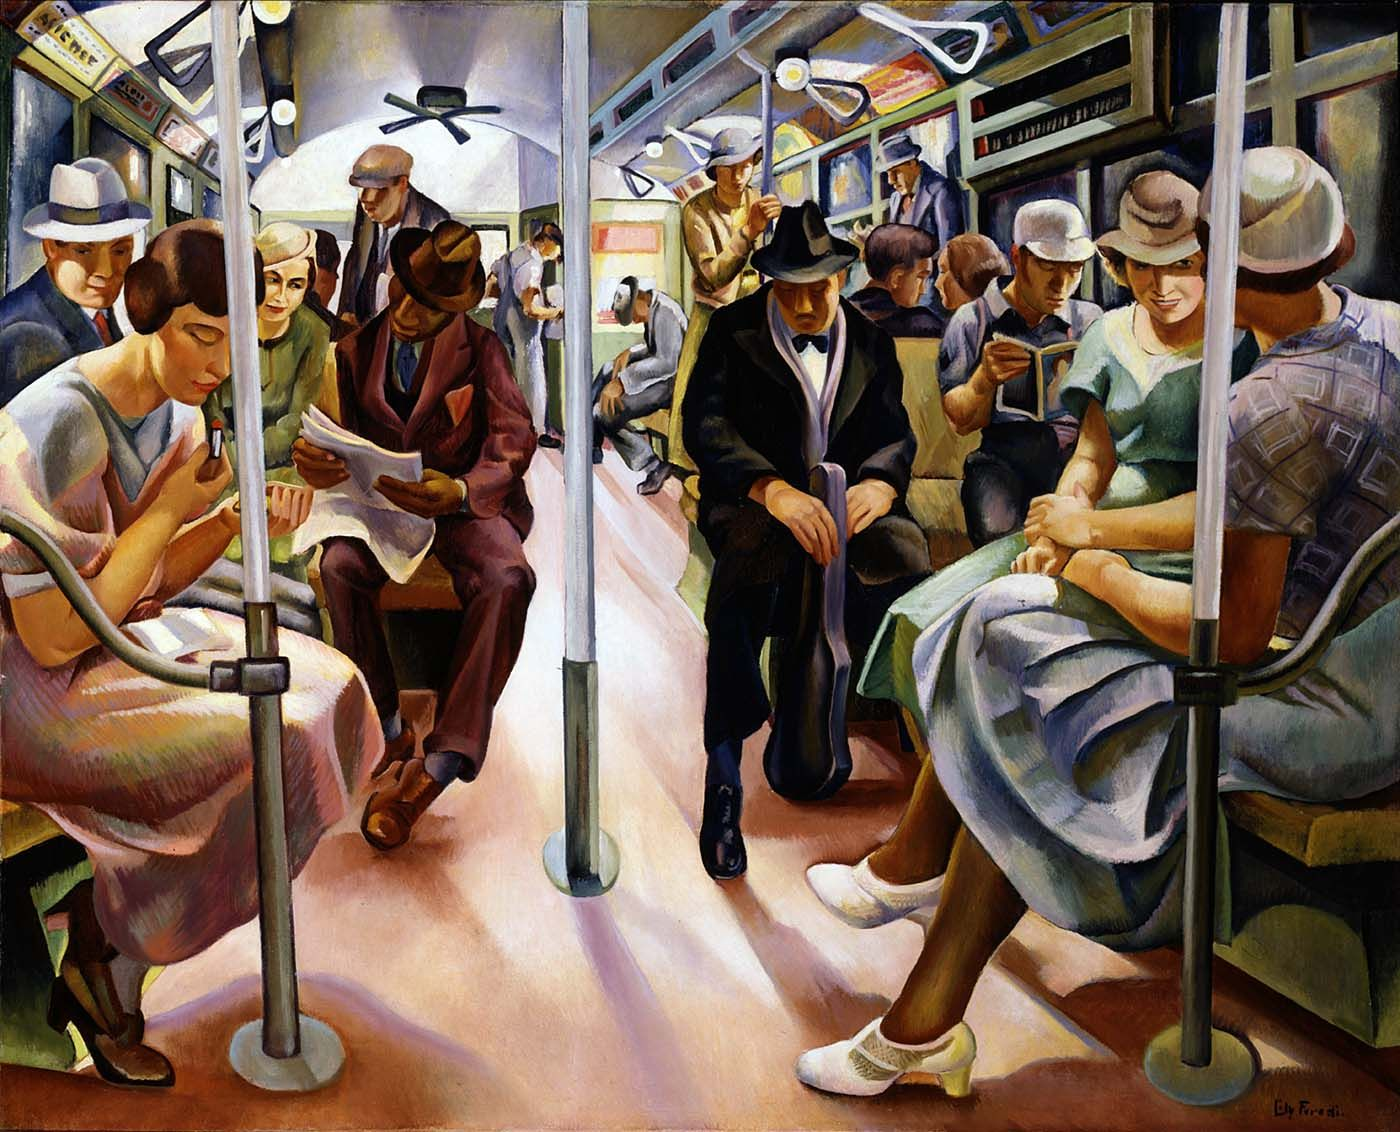 """Subway,"" Lily Furedi, 1934, oil on canvas, 39 x 48 1/4"", Smithsonian American Art Museum."